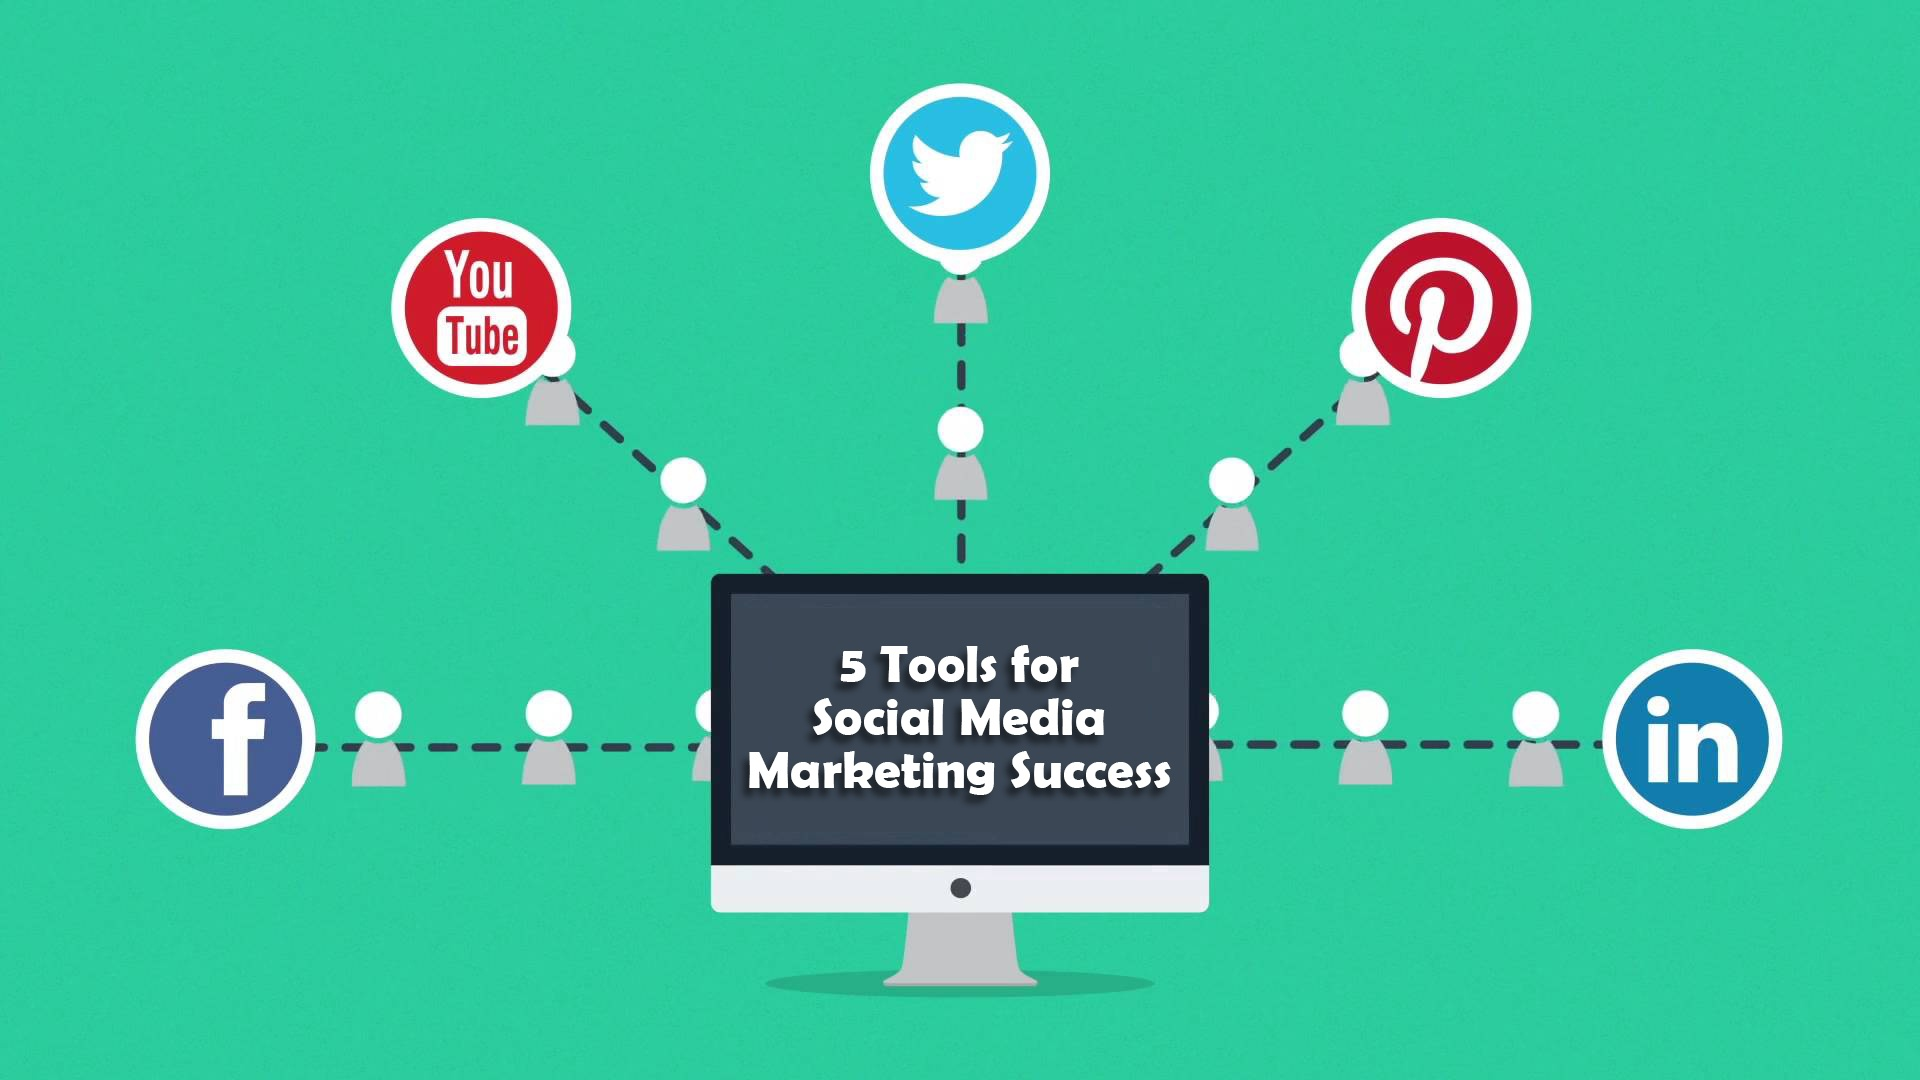 5 Tools for Social Media Marketing Success